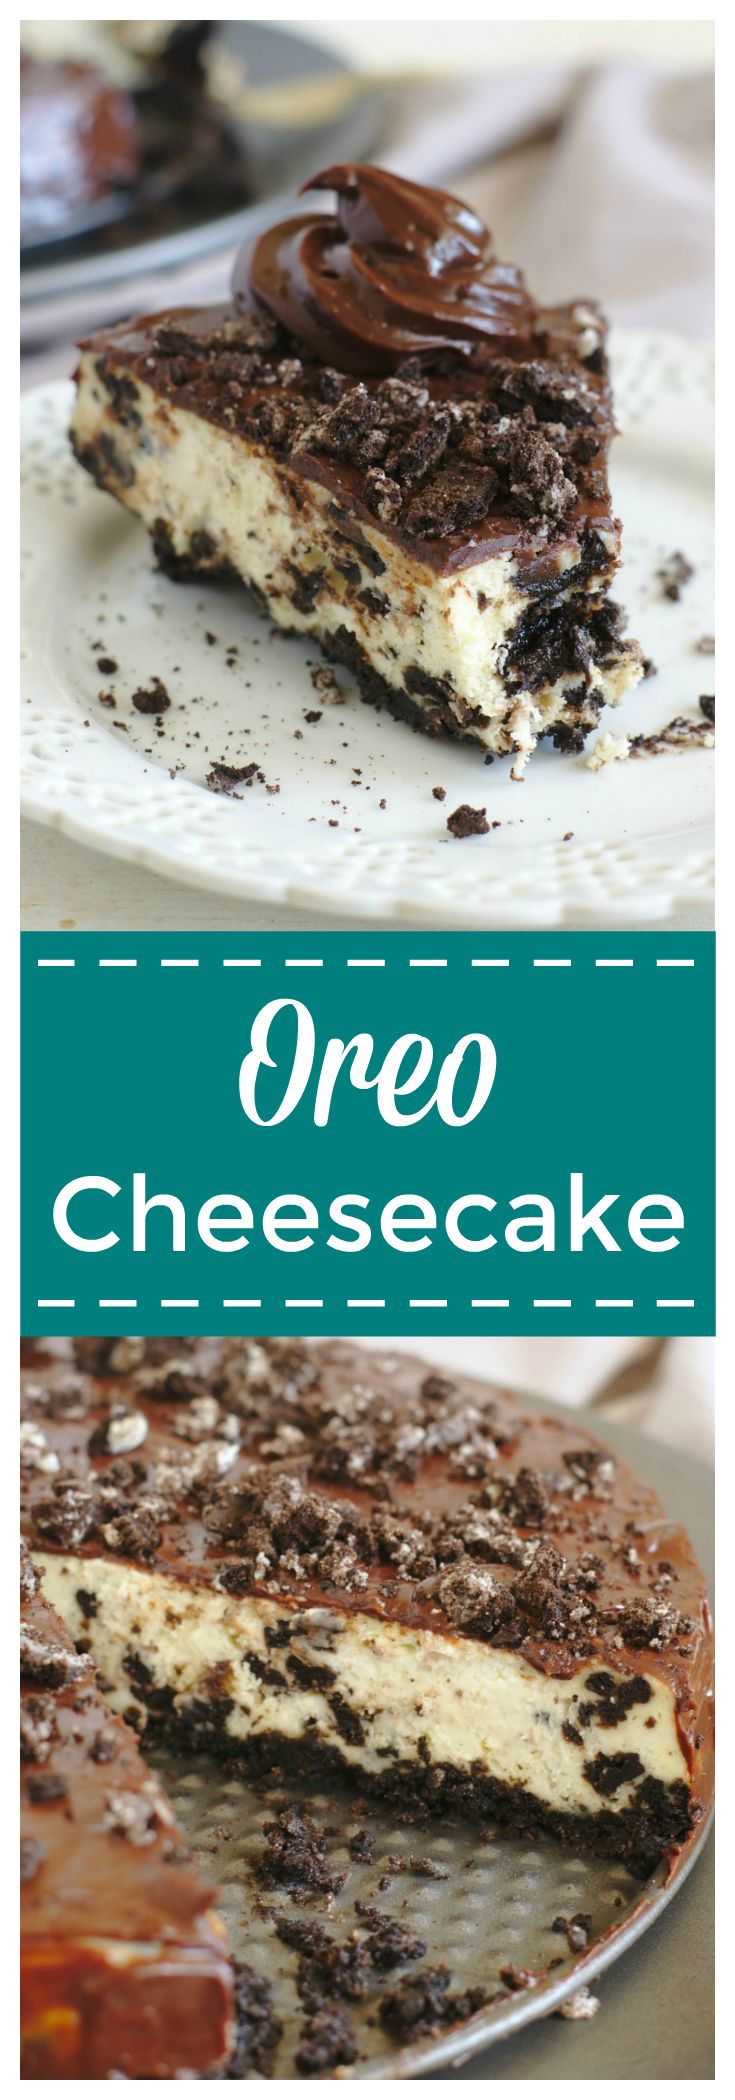 Oreo Cheesecake – A delicious homemade cheesecake perfect for Oreo fans! Oreo cookie crust, cookies and cream cheesecake filling, topped with a creamy chocolate ganache and crushed oreo cookies! #oreo #cheesecake #dessert #chocolate